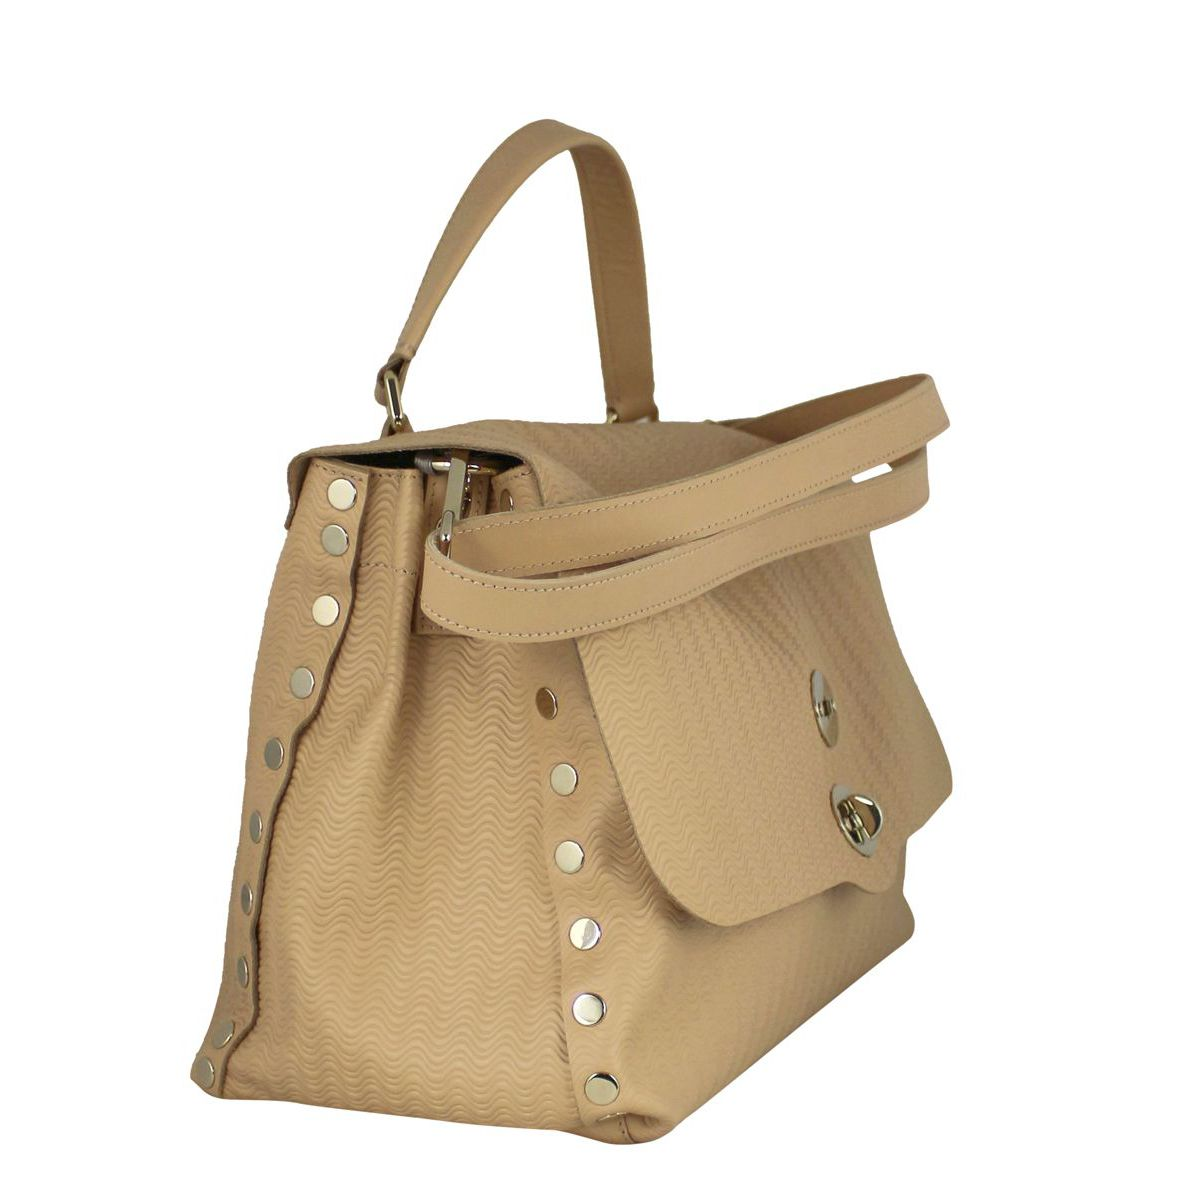 Postina M bag in Blandine Cashmere leather Nude Zanellato